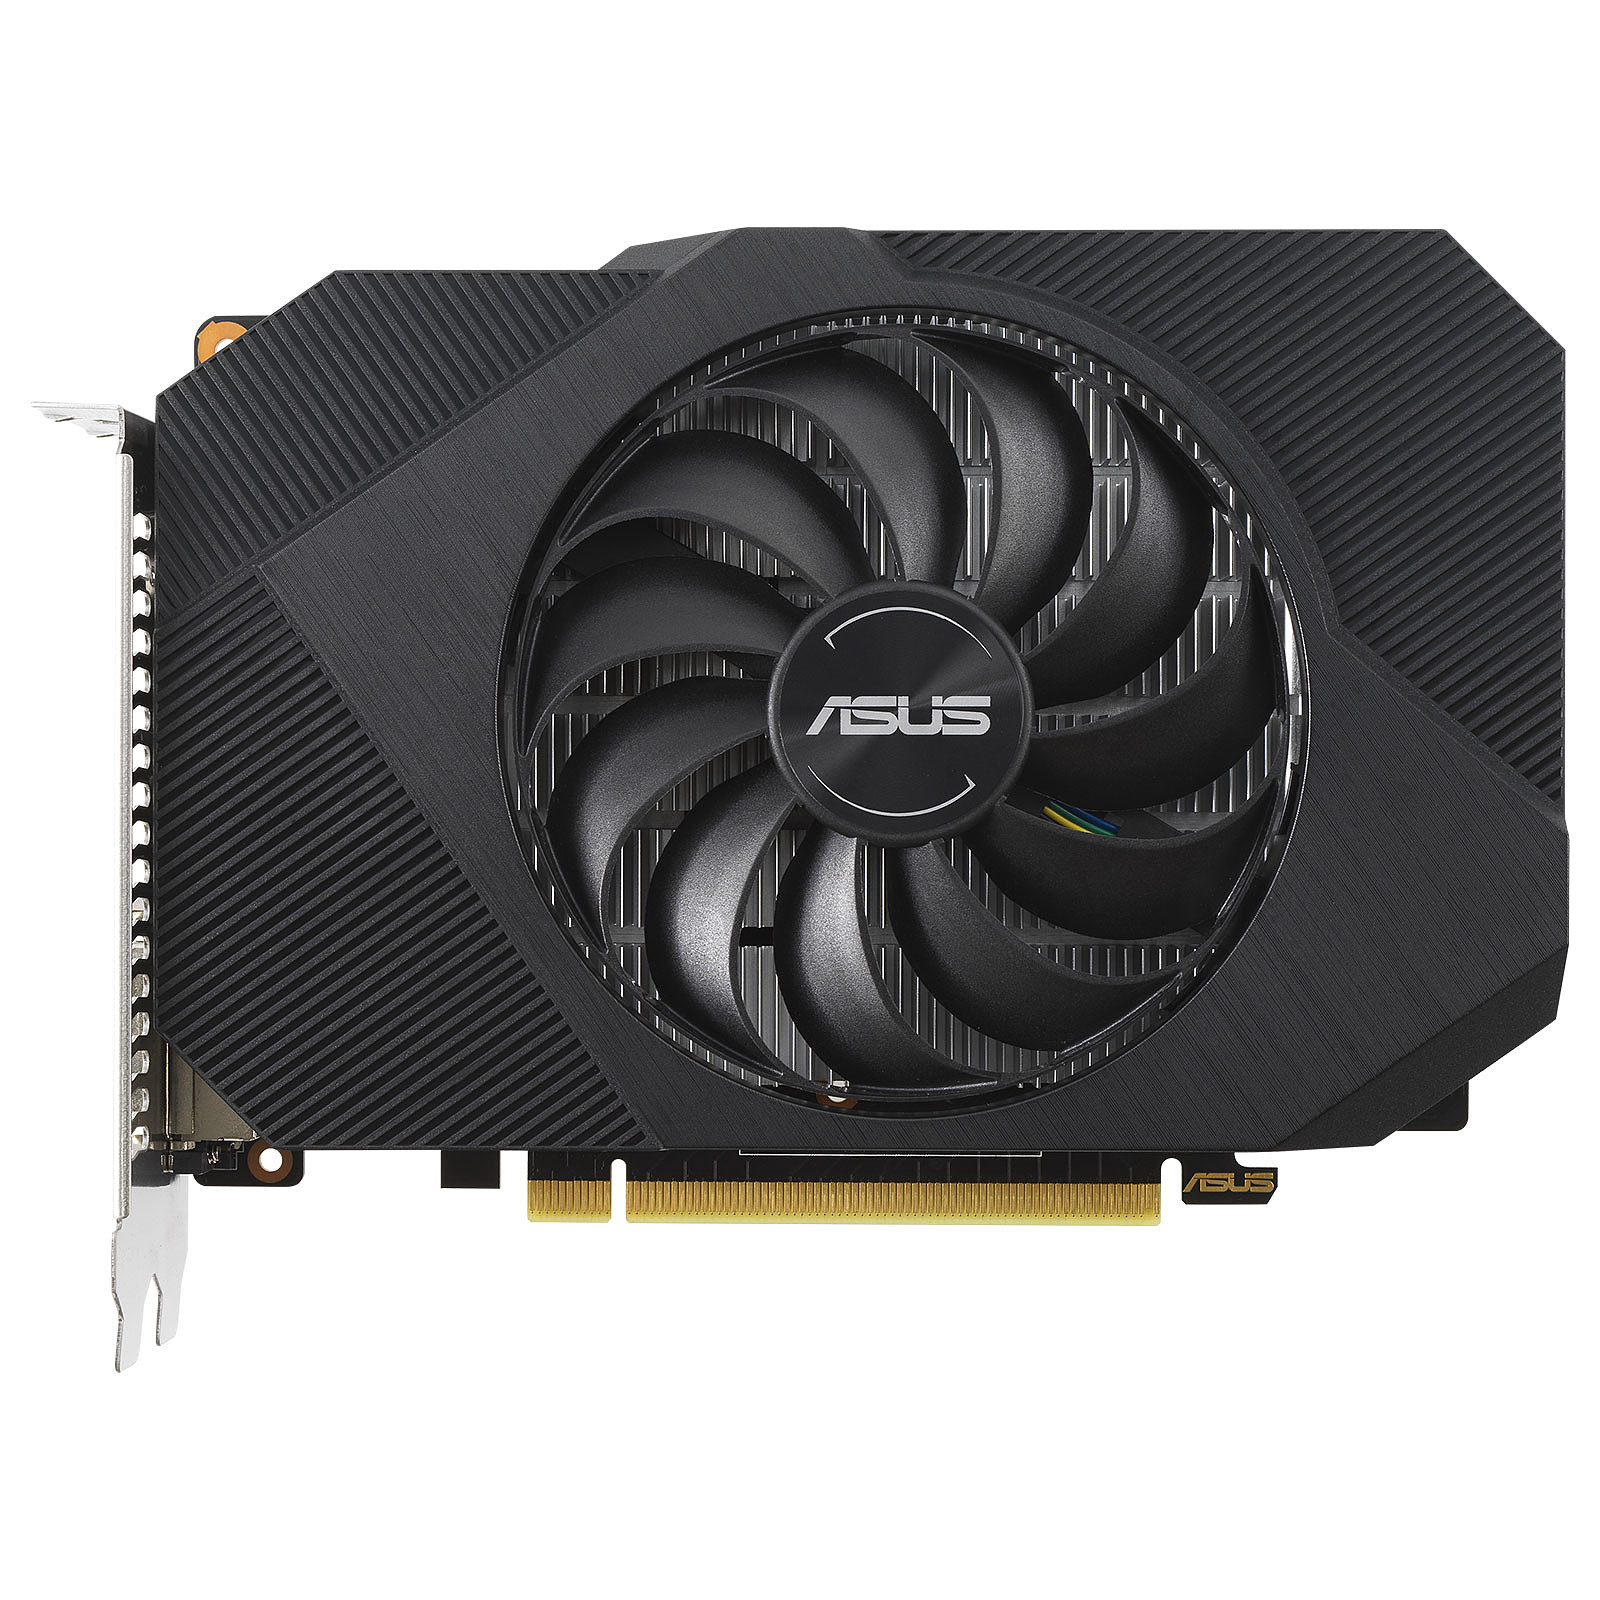 Carte graphique ASUS Phoenix GeForce GTX 1650 OC Edition 4 Go GDDR6 PCIe 3.0, informatique reunion, informatique ile de la Réunion 974